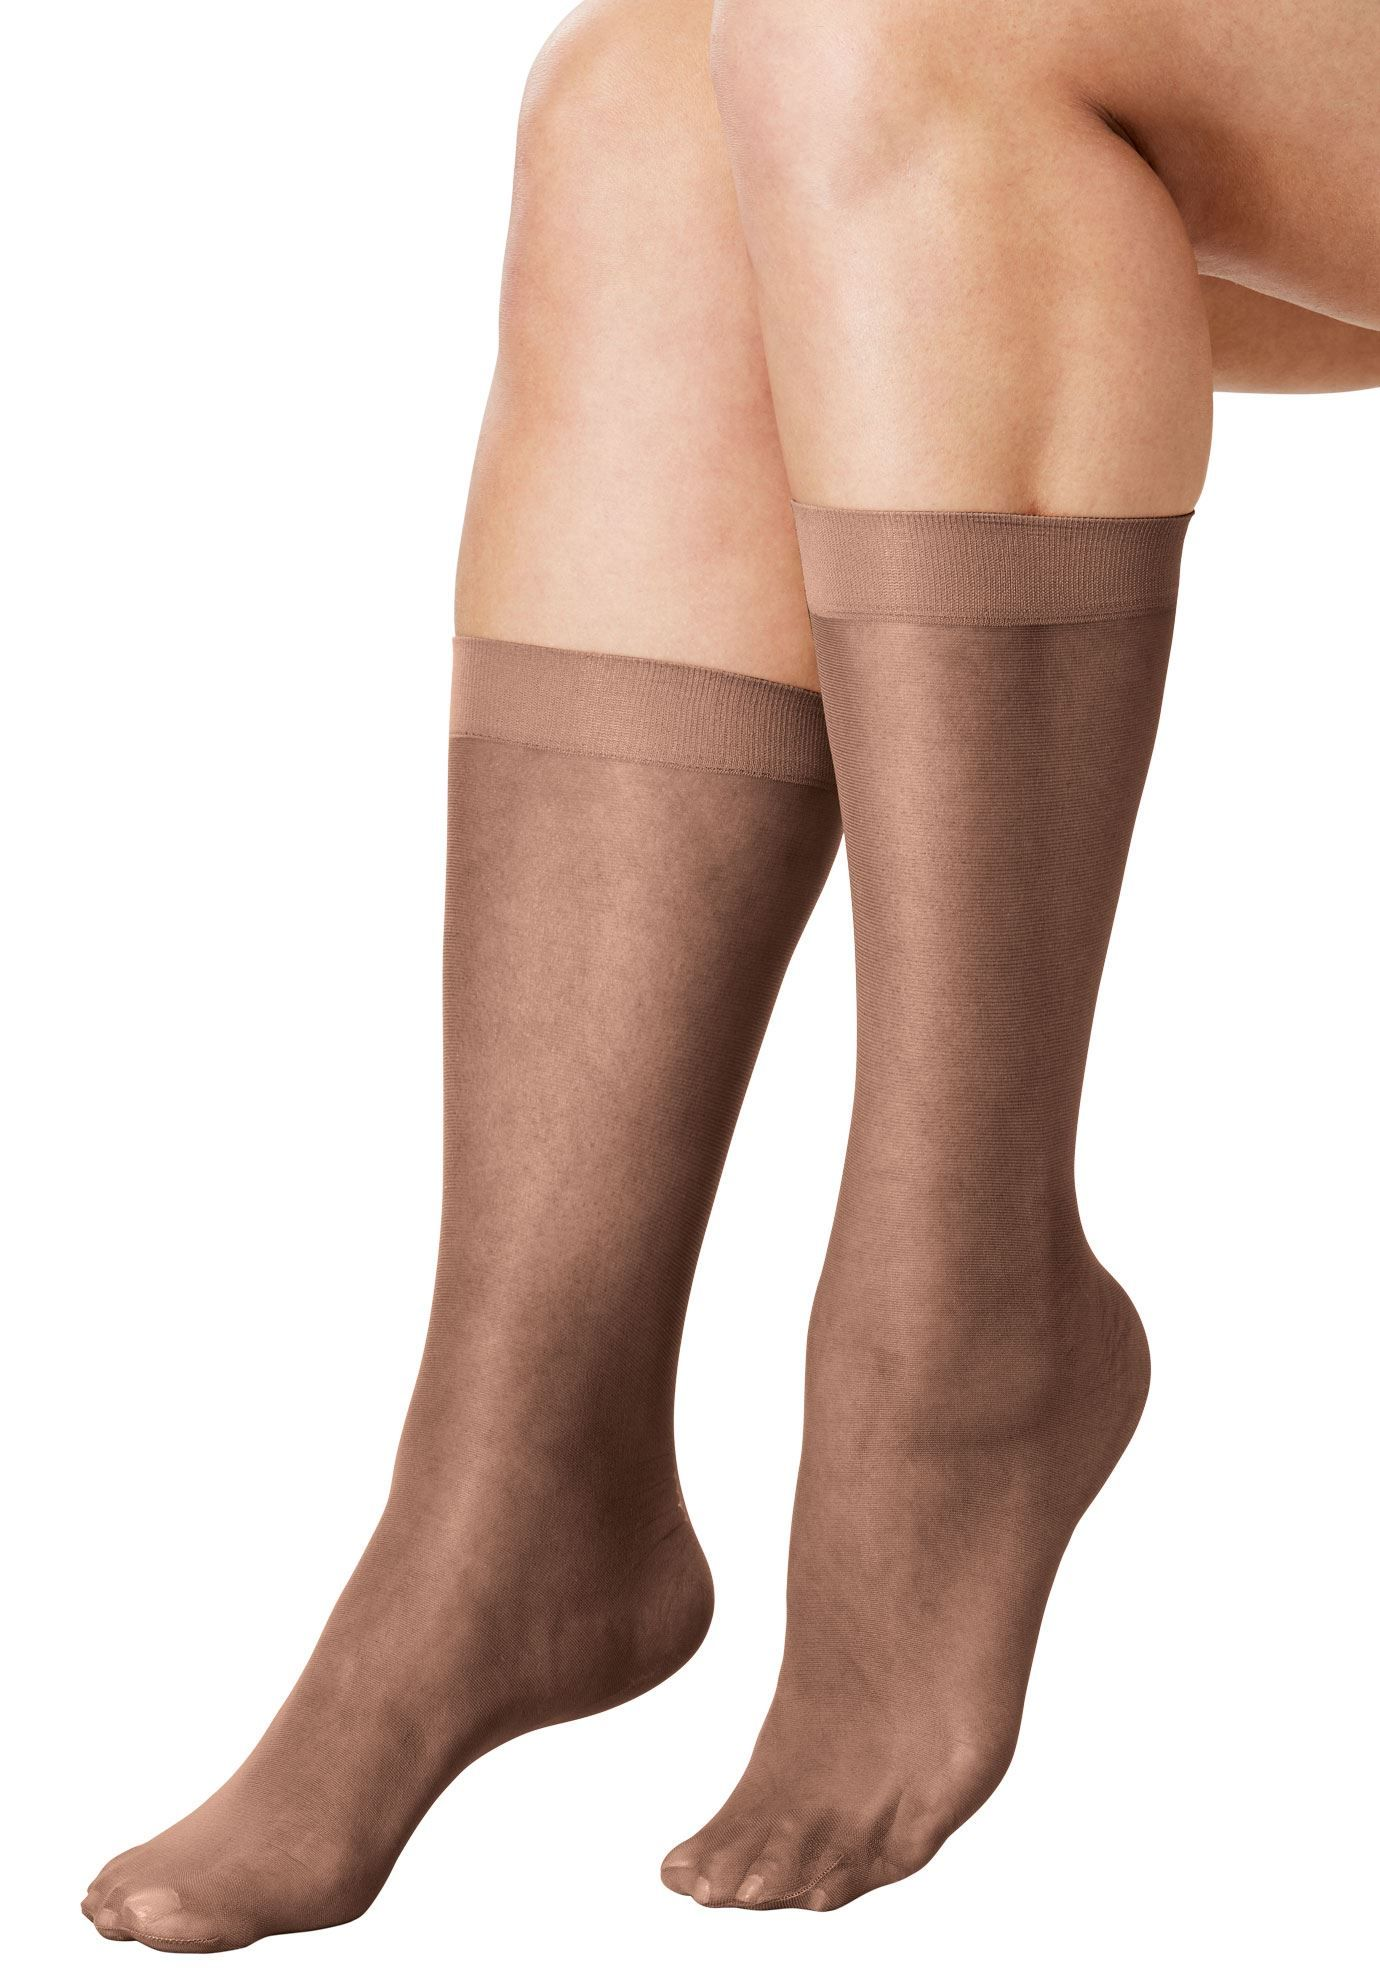 db7eedd21 6-Pack Sheer Knee-High Socks by Comfort Choice - Women s Plus Size Clothing